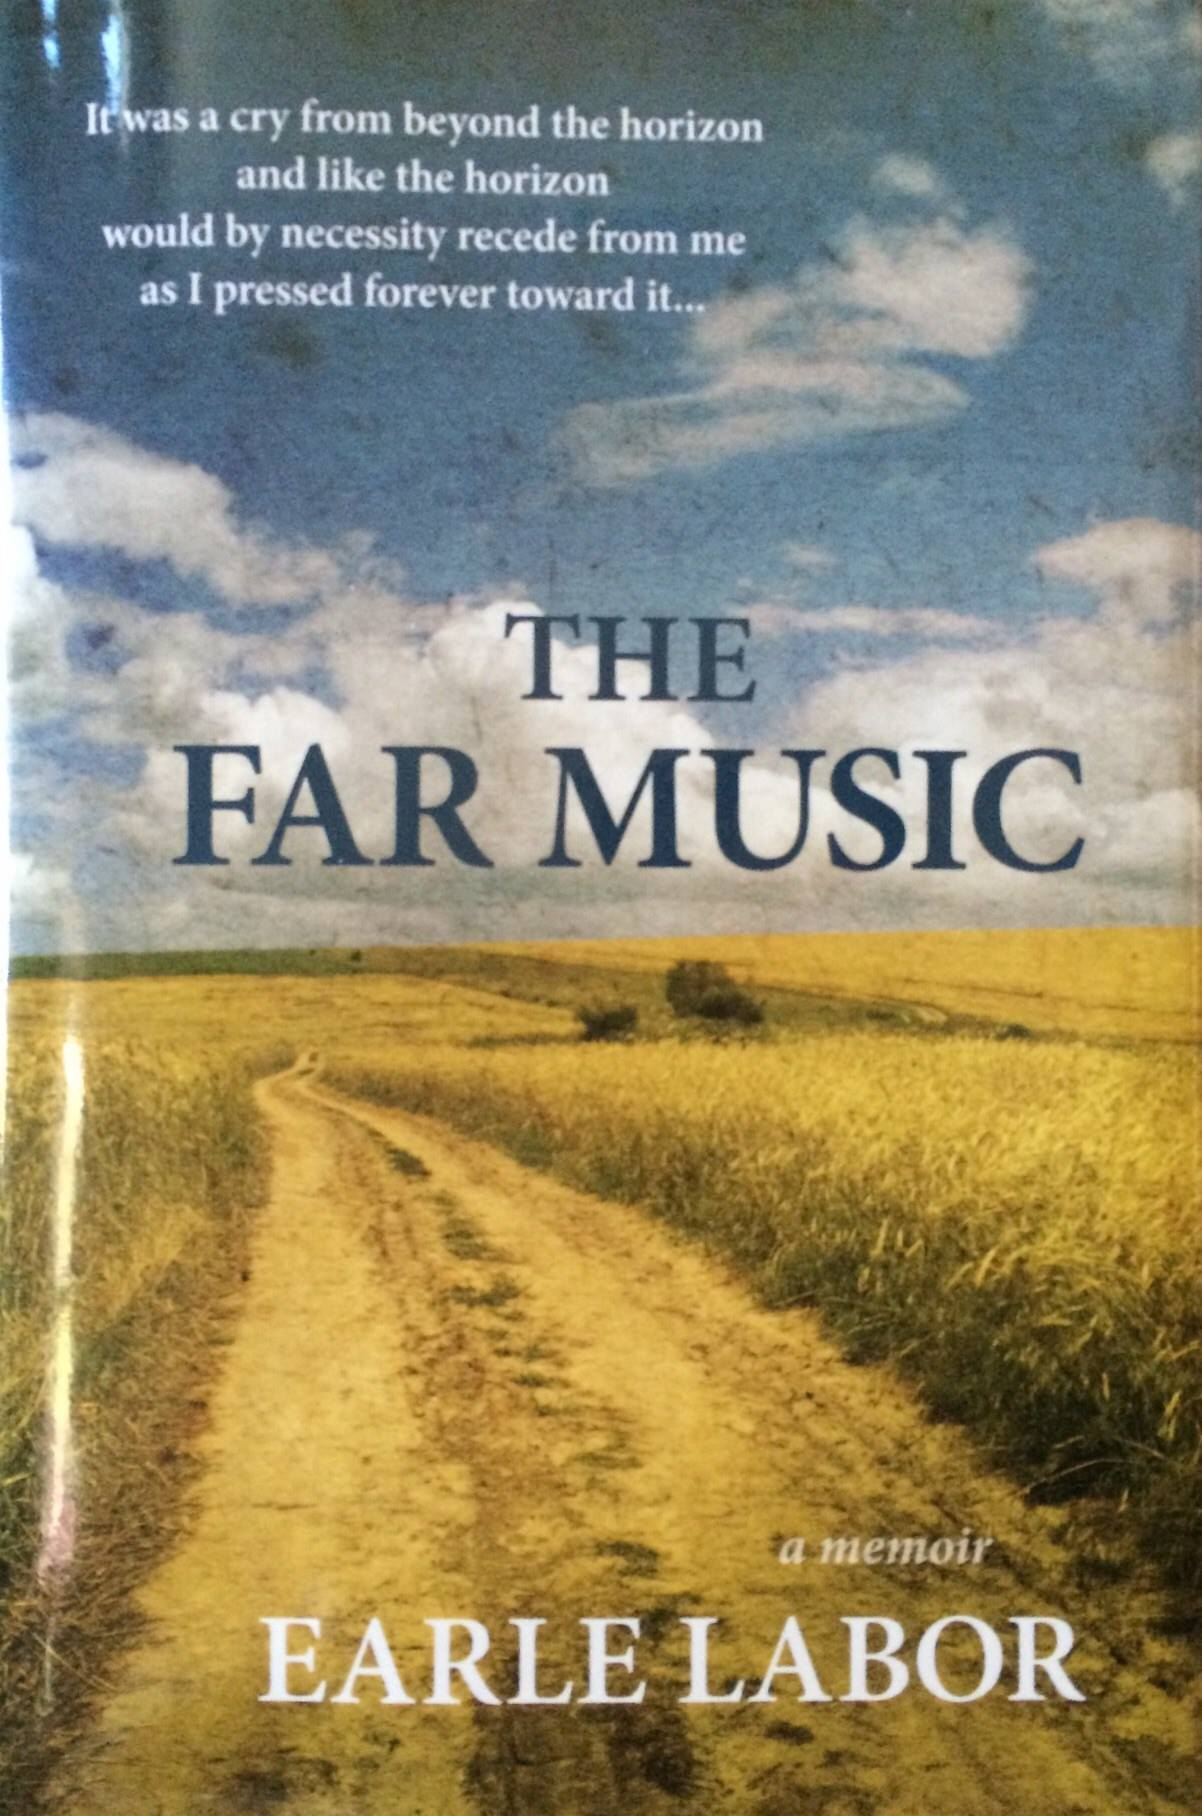 Book cover of The Far Music by Earle Labor.